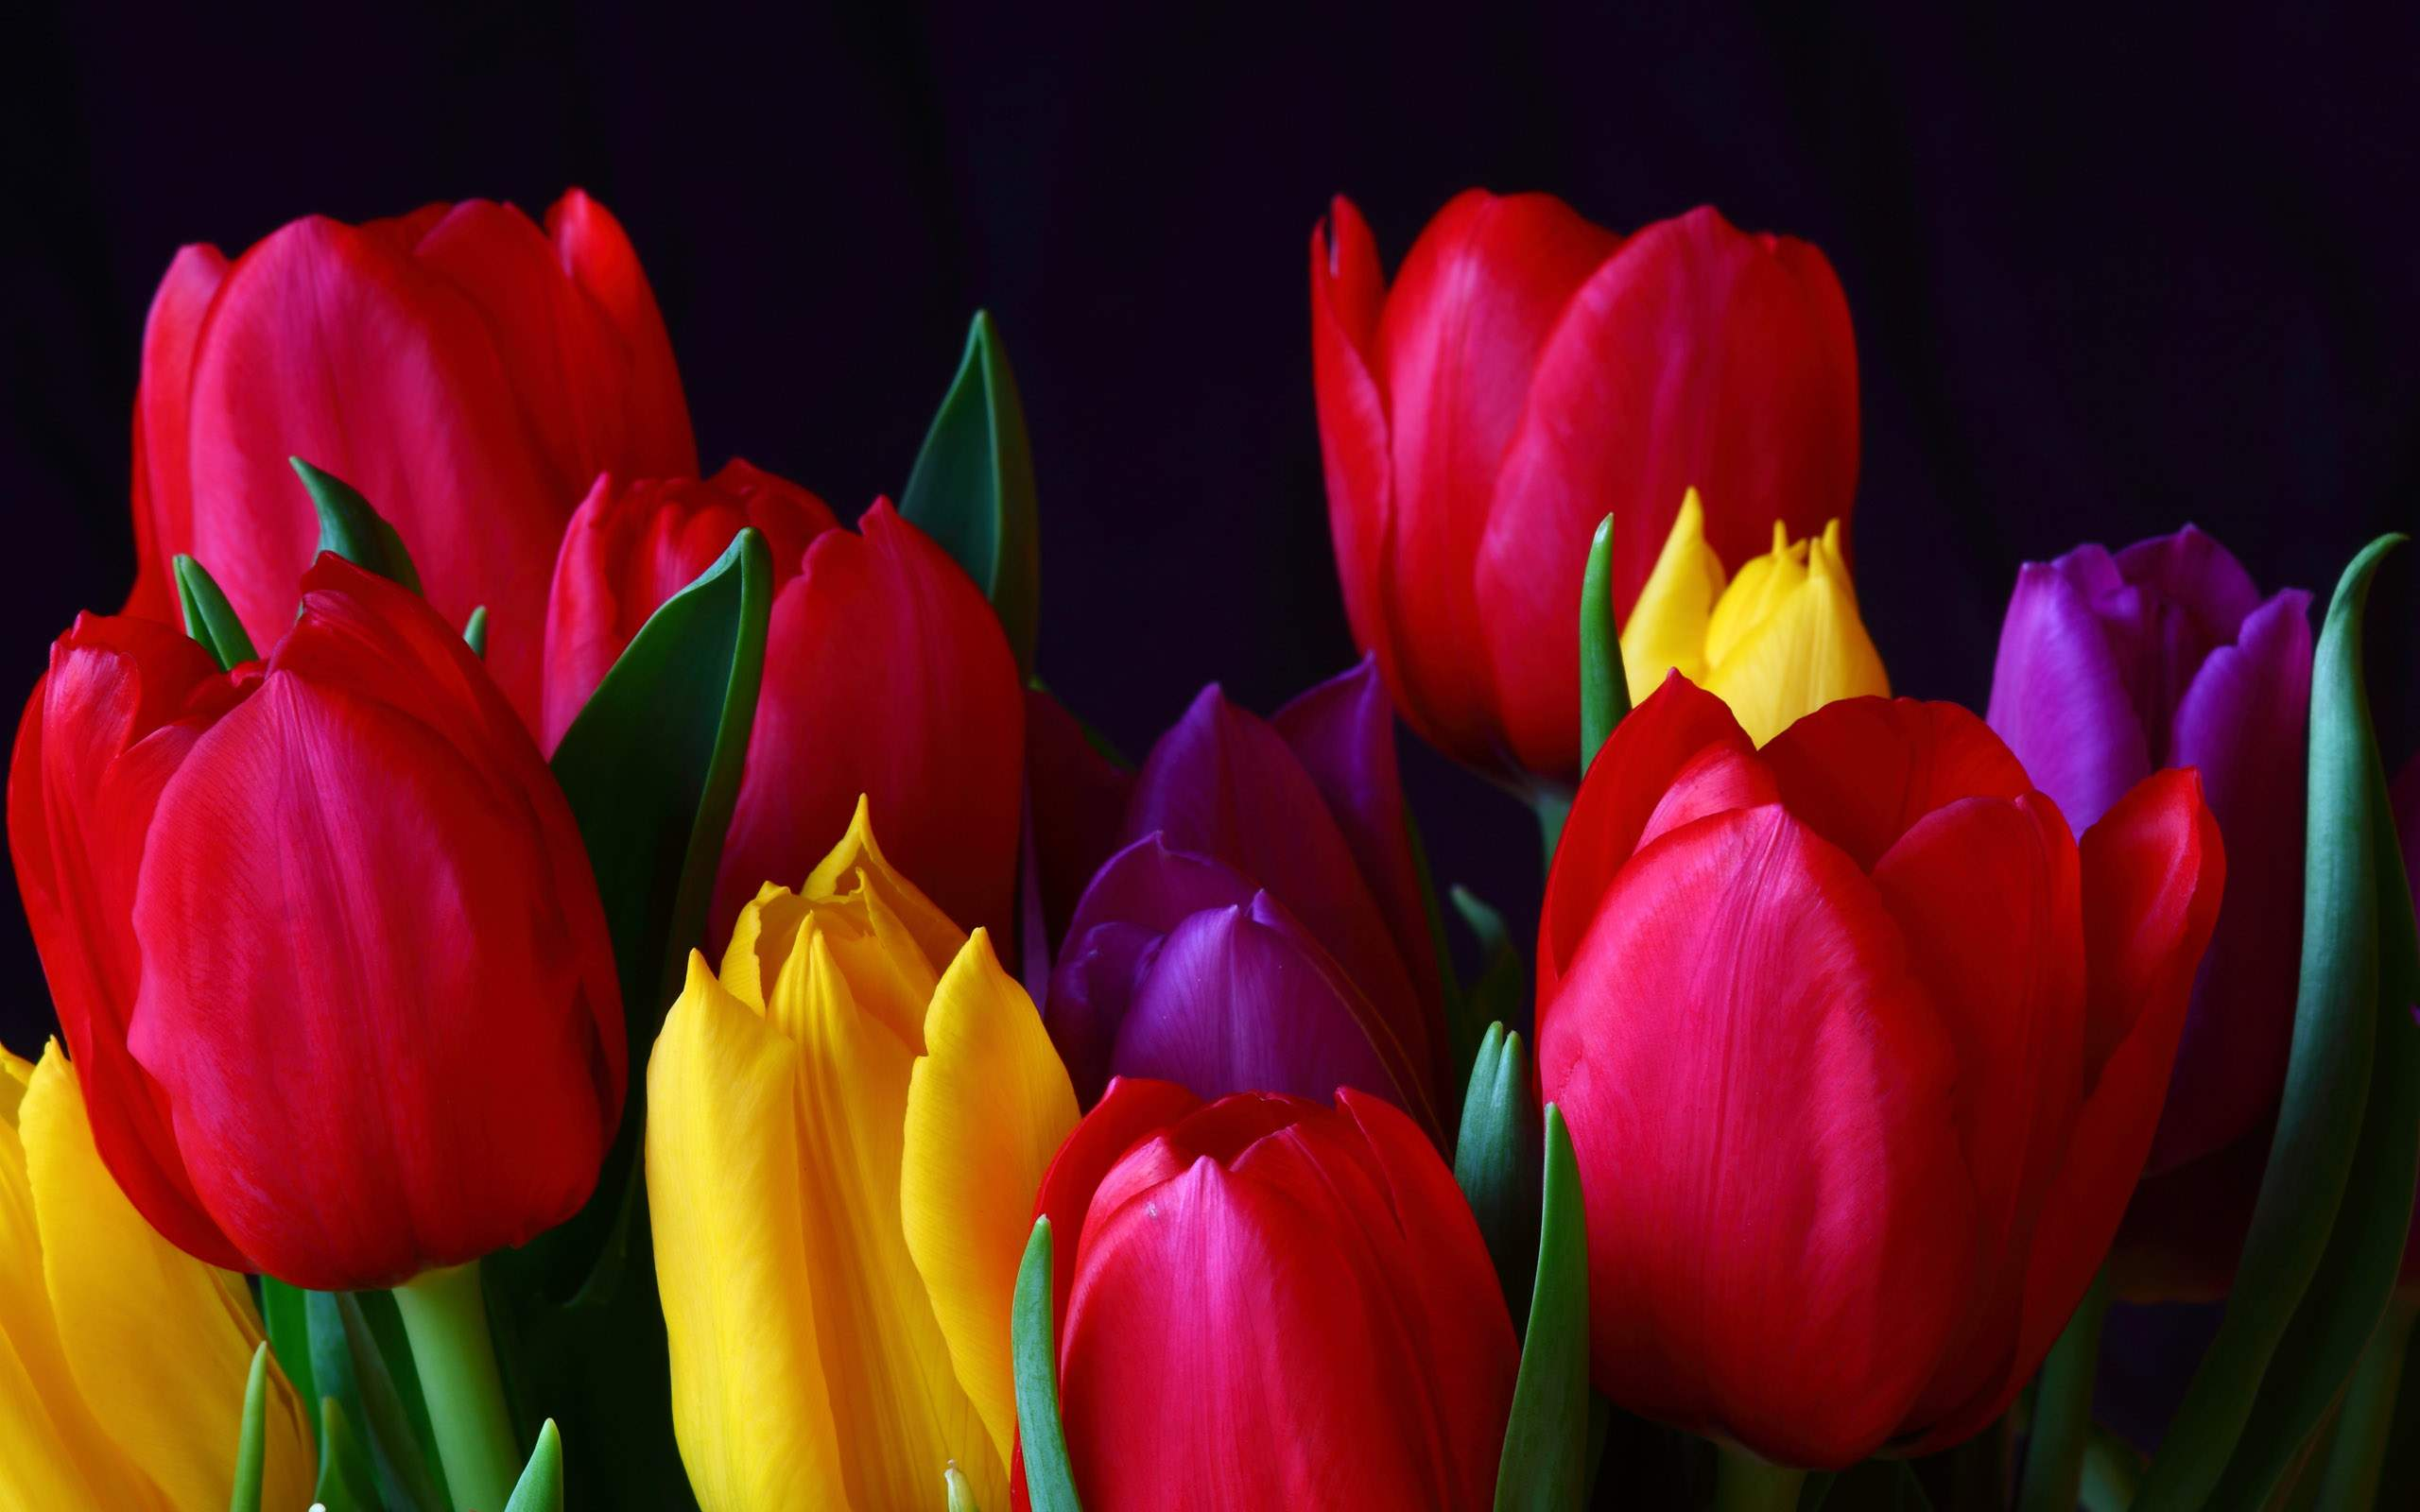 Beautiful Multi Colored Tulip Flowers Wallpapers | All Flowers | Send Wallpaper